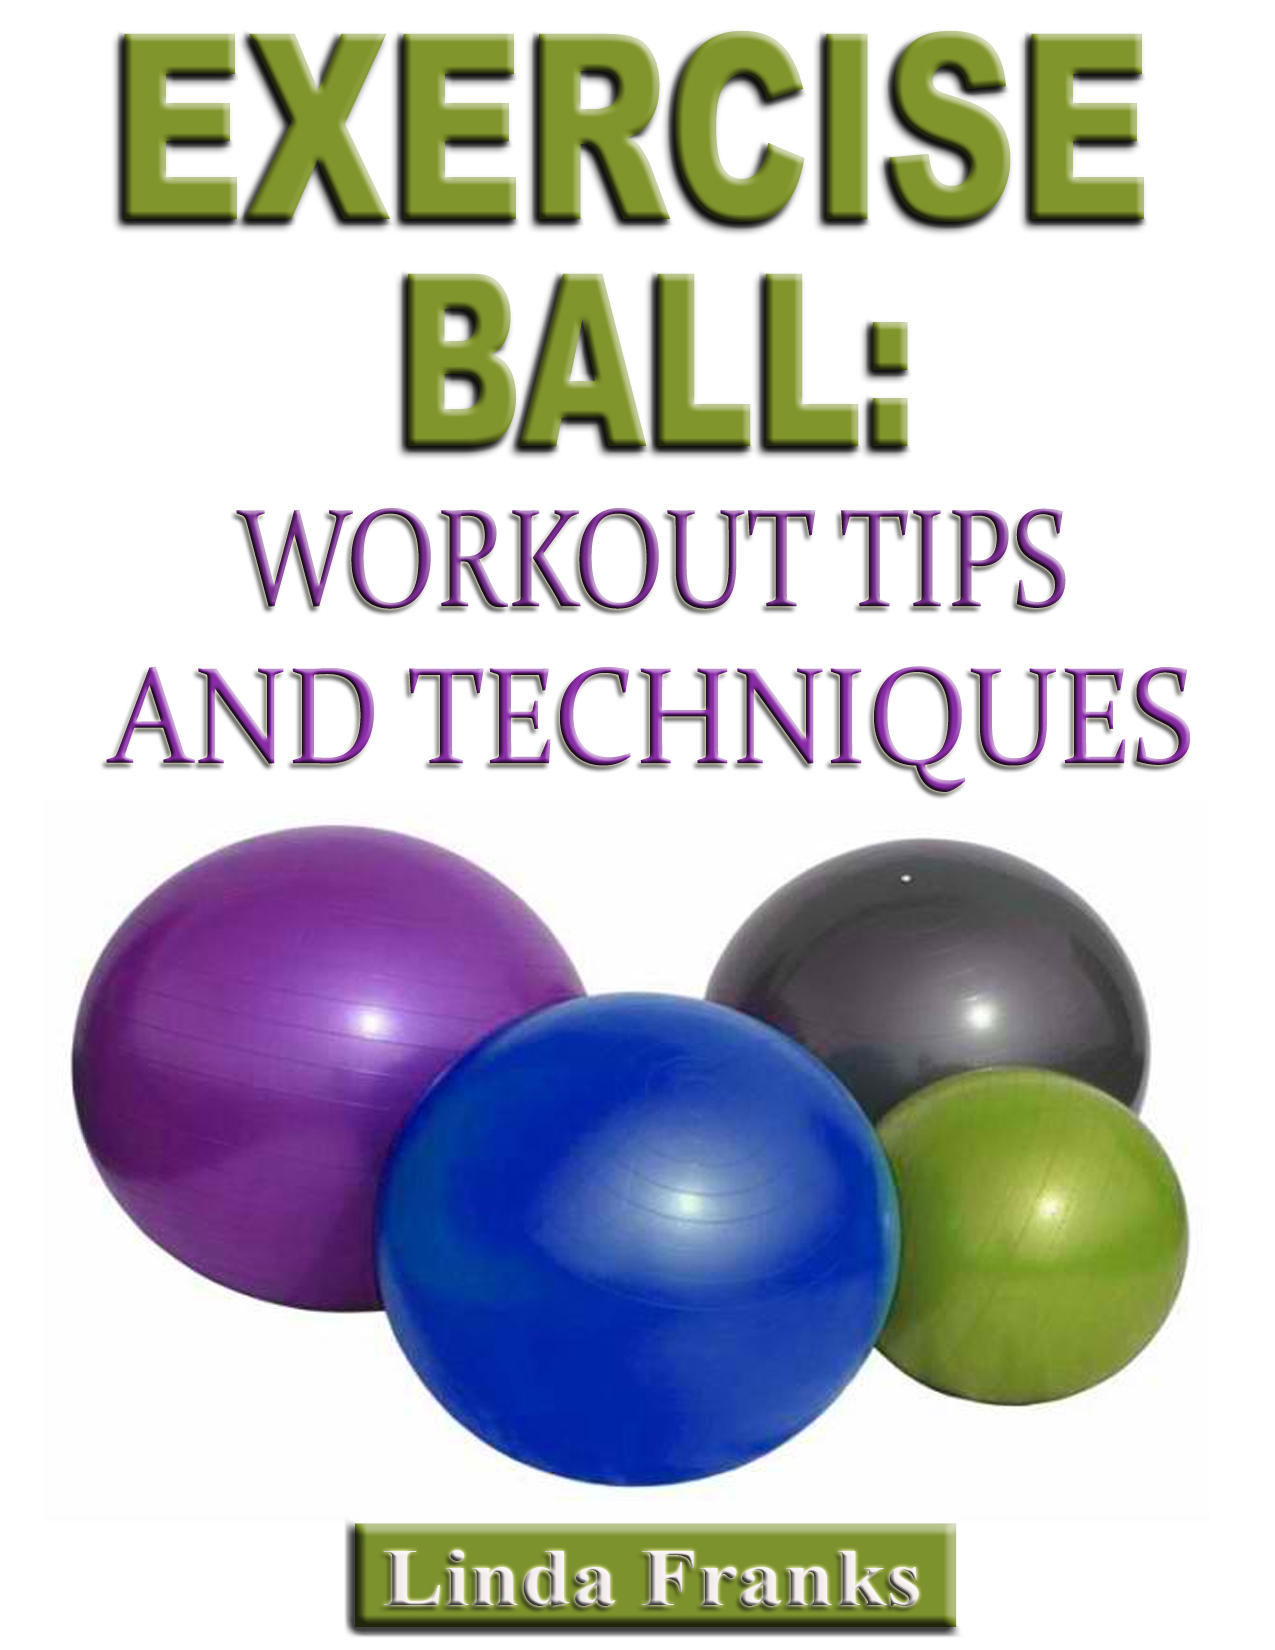 Linda Franks - Exercise Ball: Workout Tips and Techniques